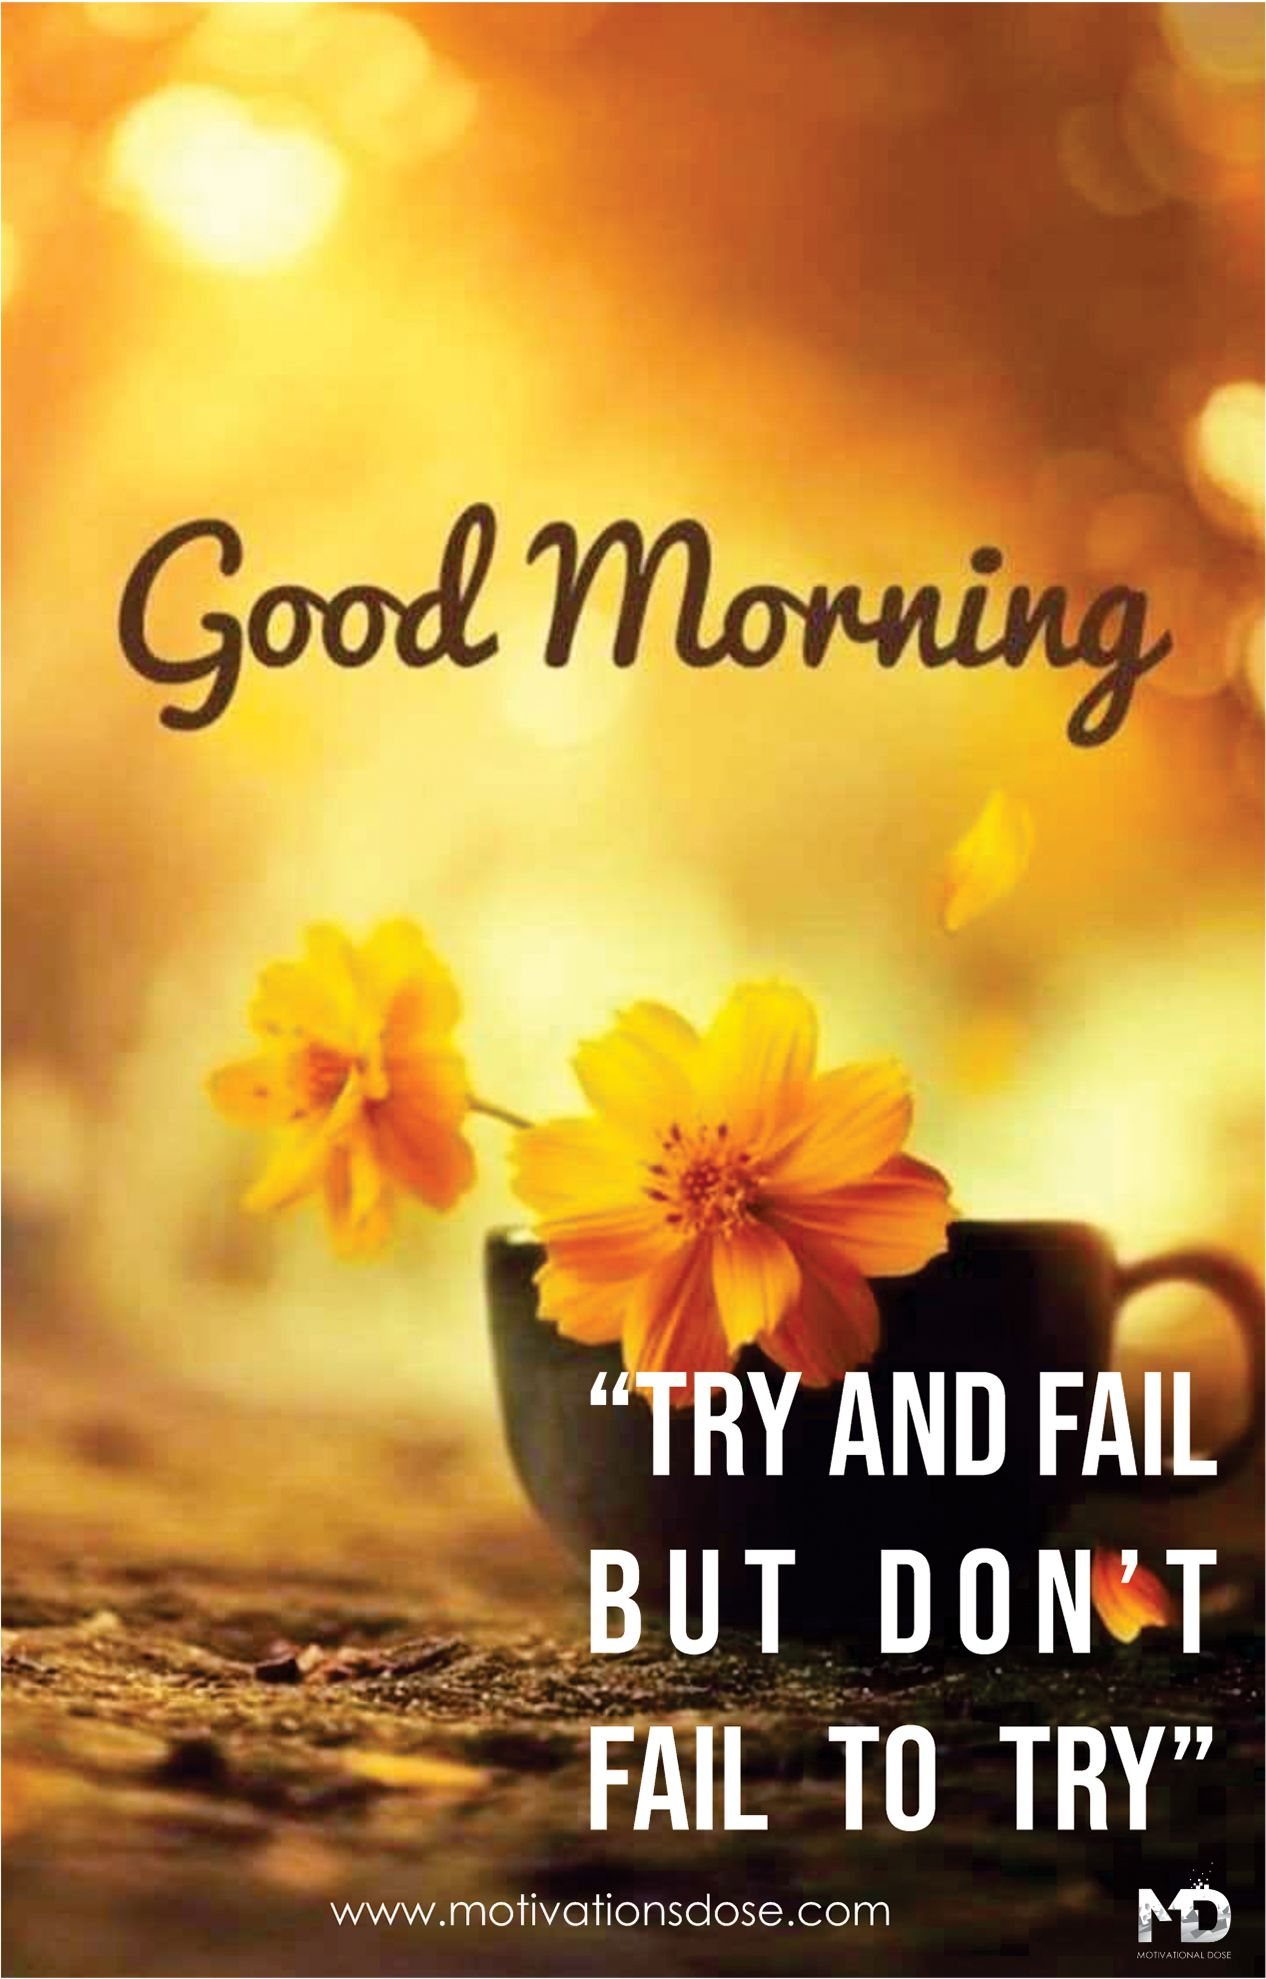 Top 10 Motivational Good Morning Quotes Morning Quotes Funny Motivational Good Morning Quotes Morning Quotes For Him